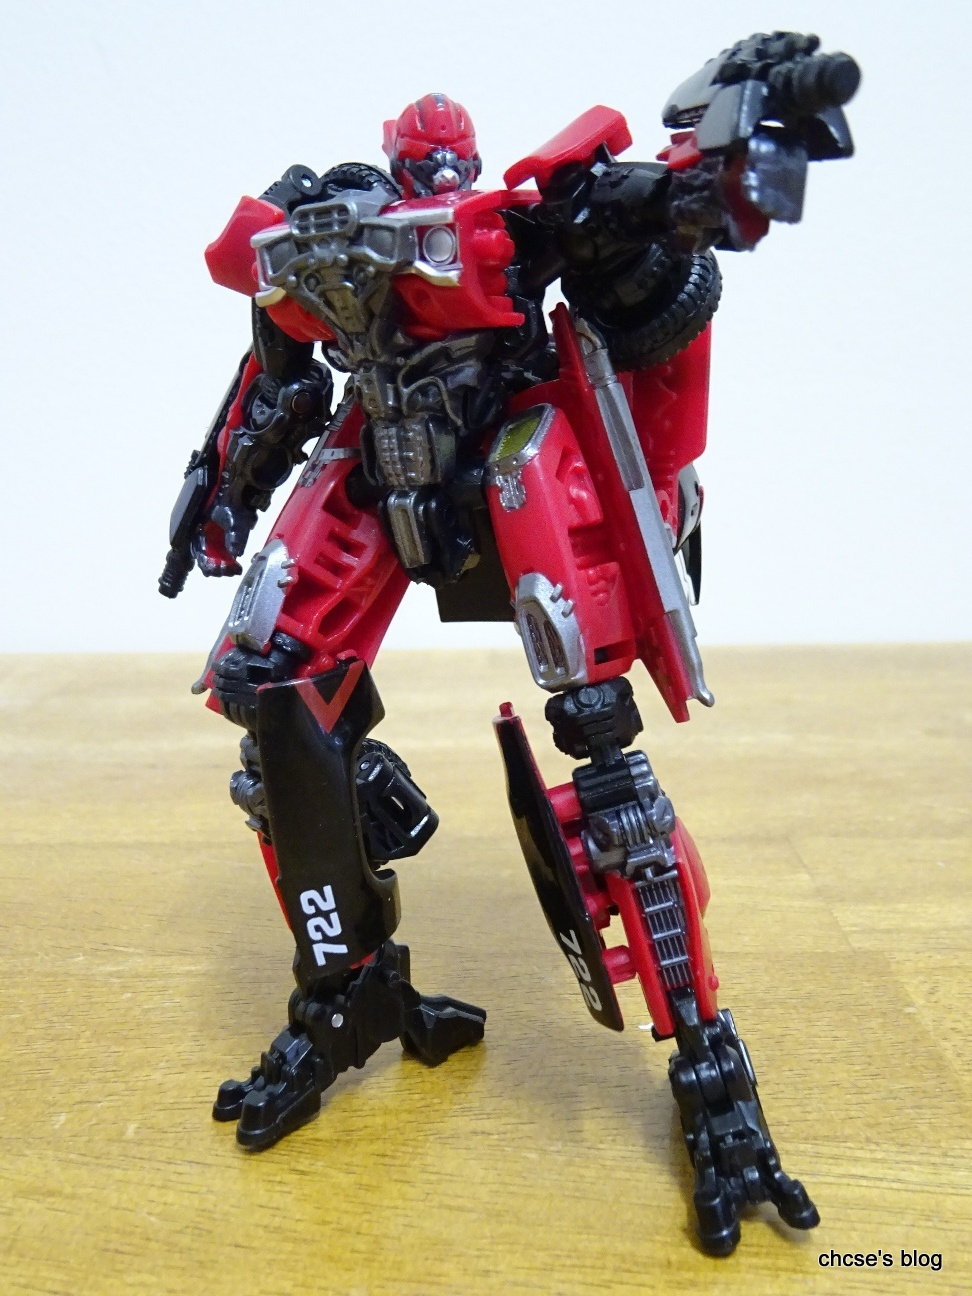 ChCse's blog: Toy Review: Transformers Generations Studio